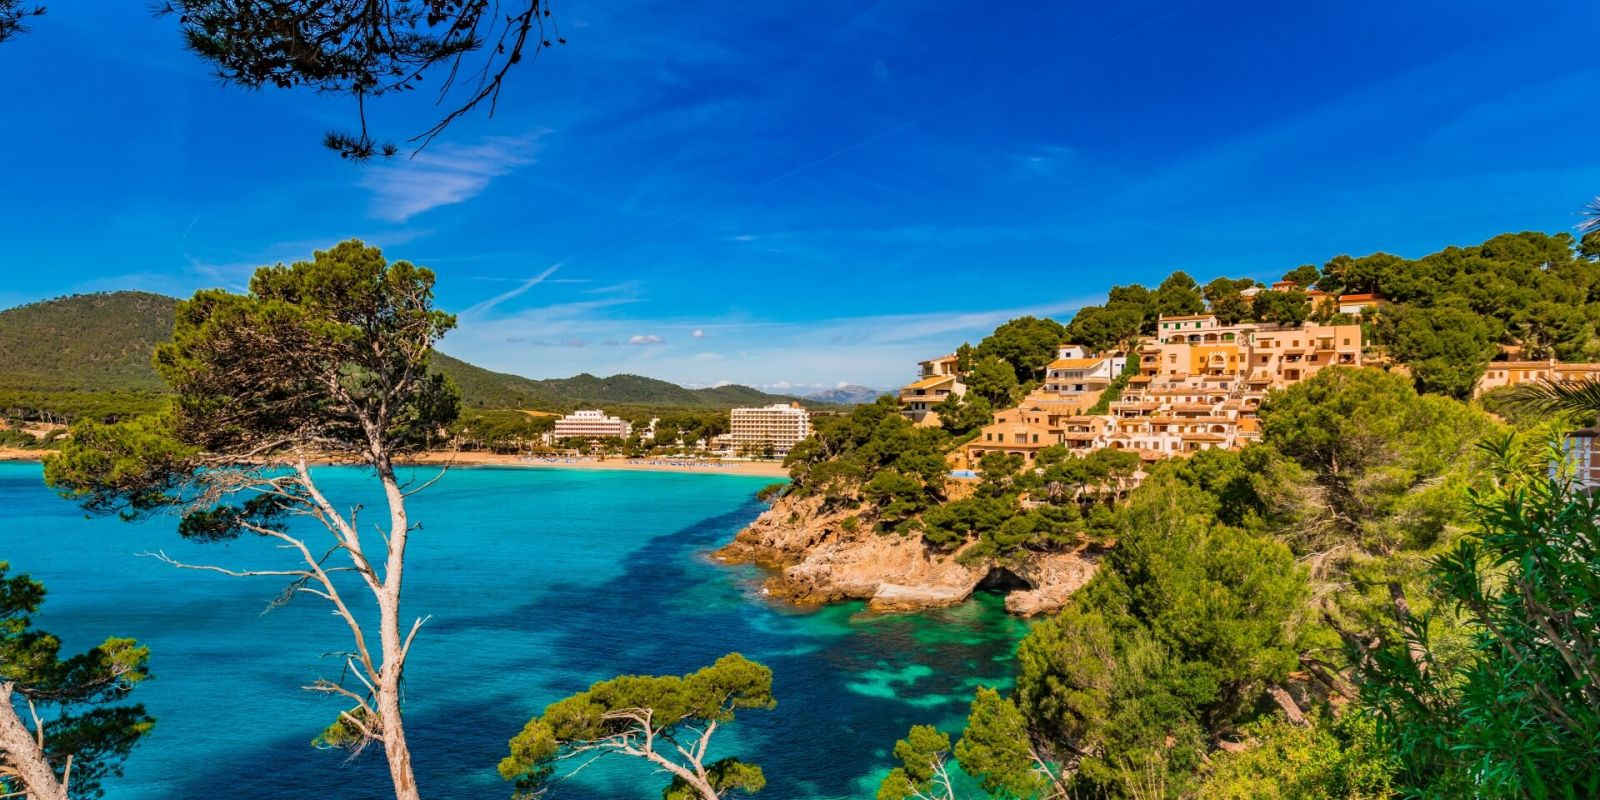 https://www.talamare.com/medias/The island of Majorca and the coast of Canyamel during a Balearics yacht charter